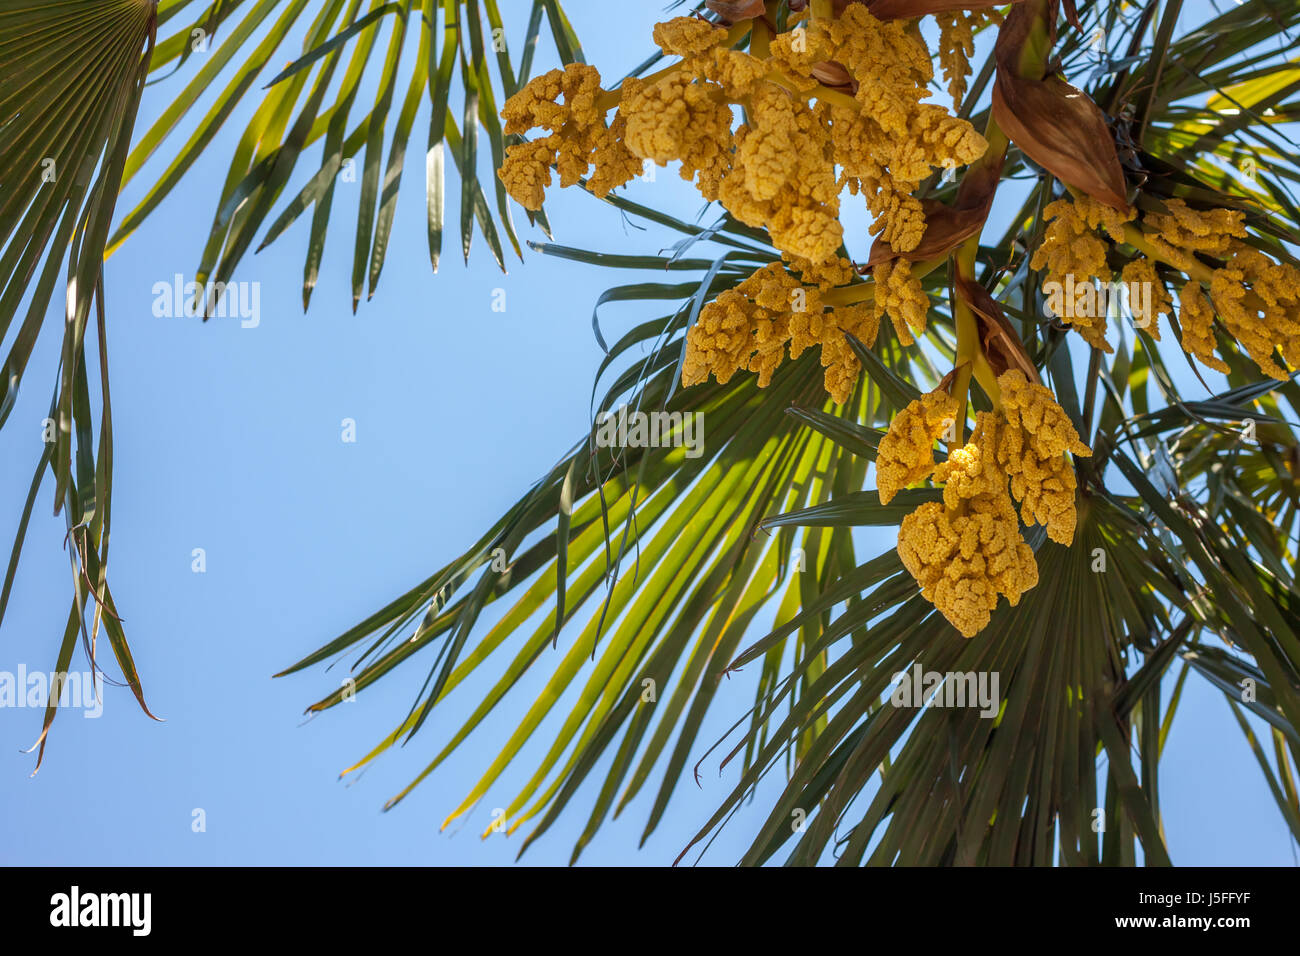 Palm tree blooming yellow flowers against blue sky stock photo palm tree blooming yellow flowers against blue sky mightylinksfo Gallery